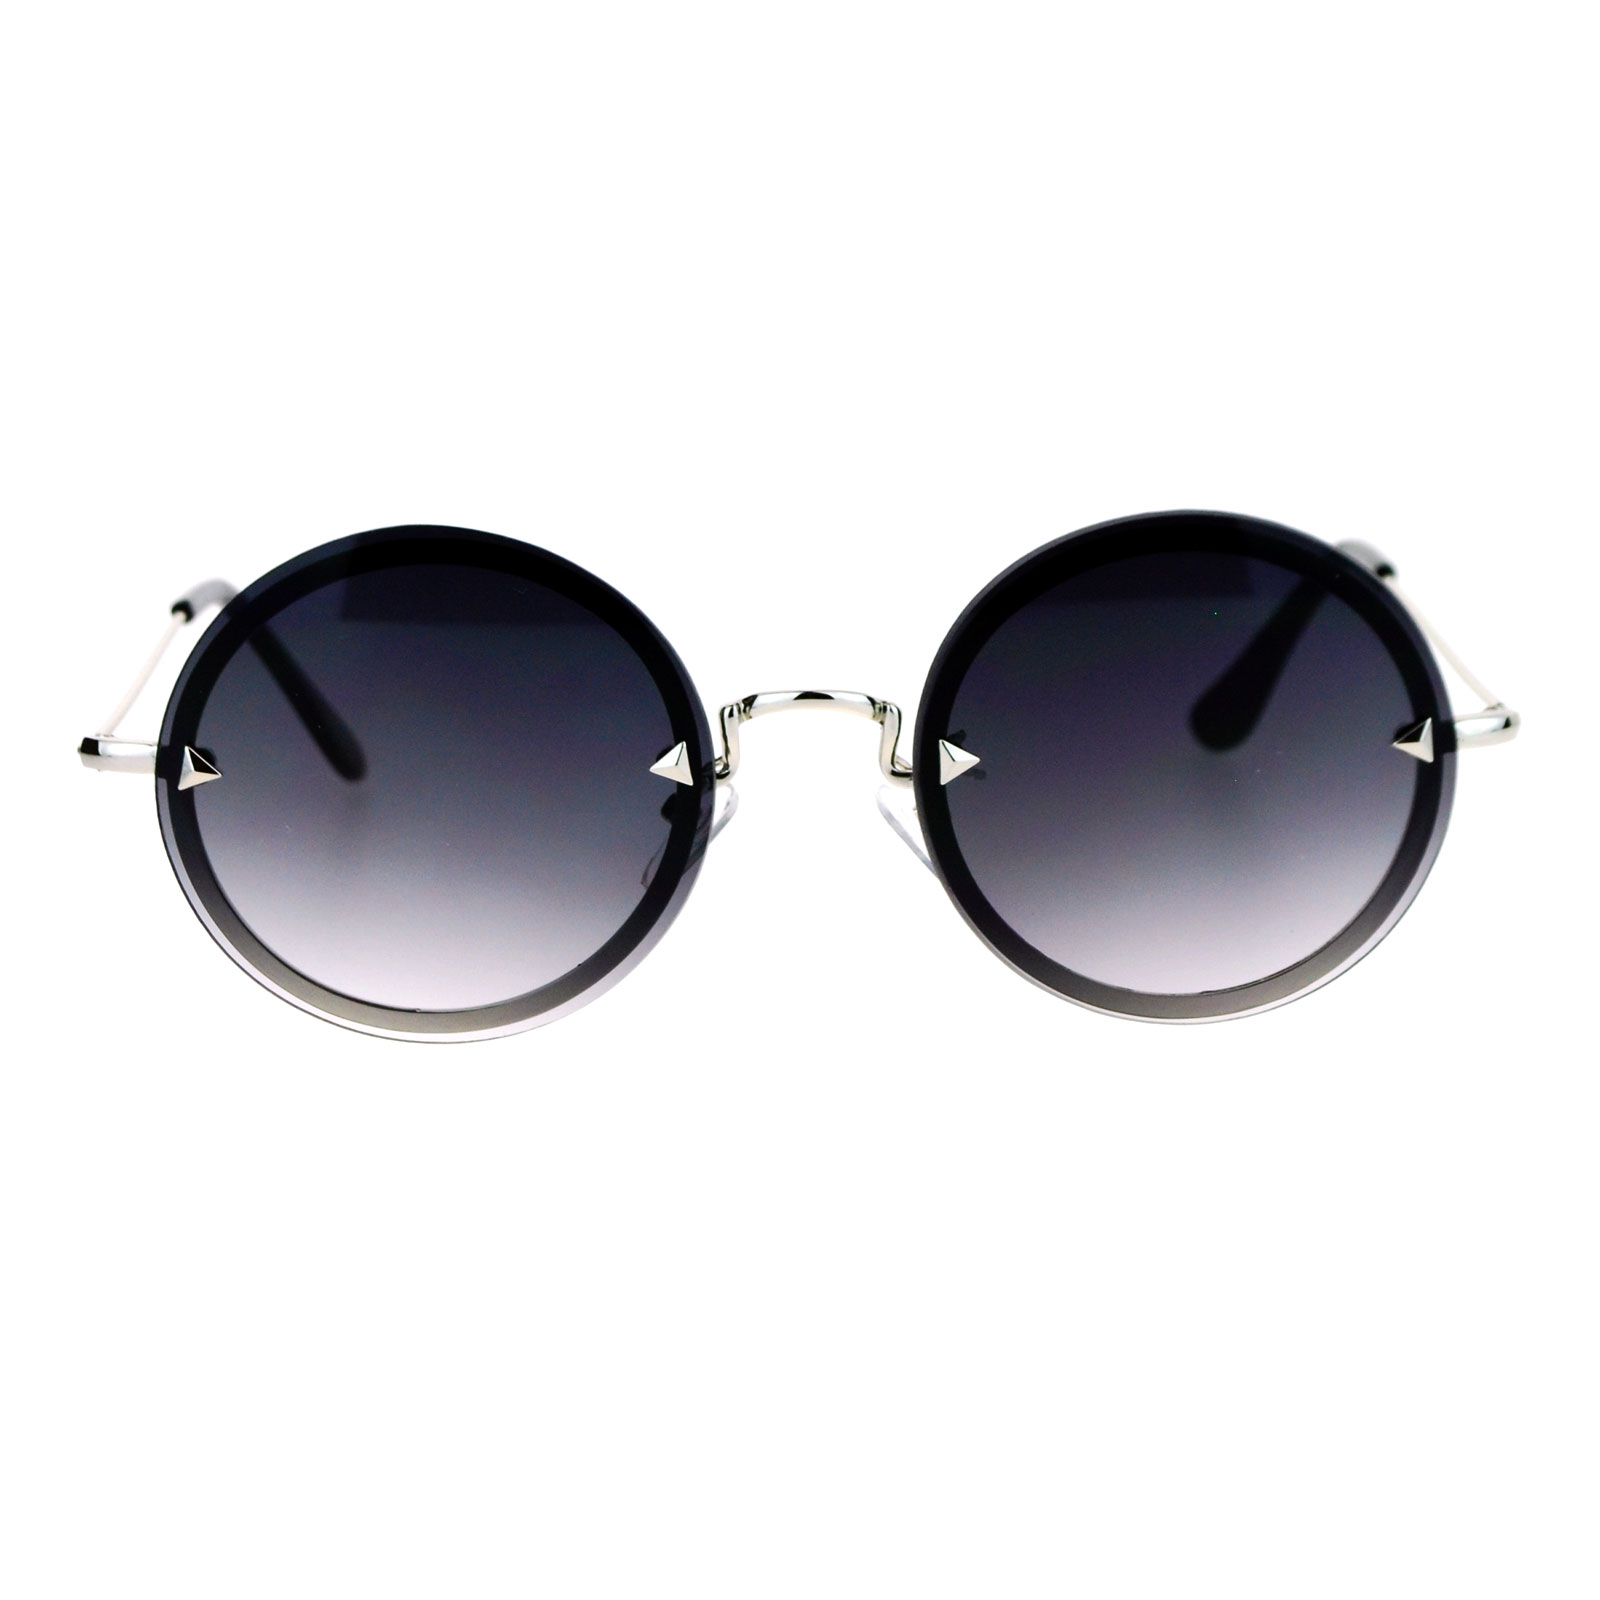 Rimless Glasses Round Lens : SA106 Flat Lens Rimless Luxury Round Oval Retro Hippie ...